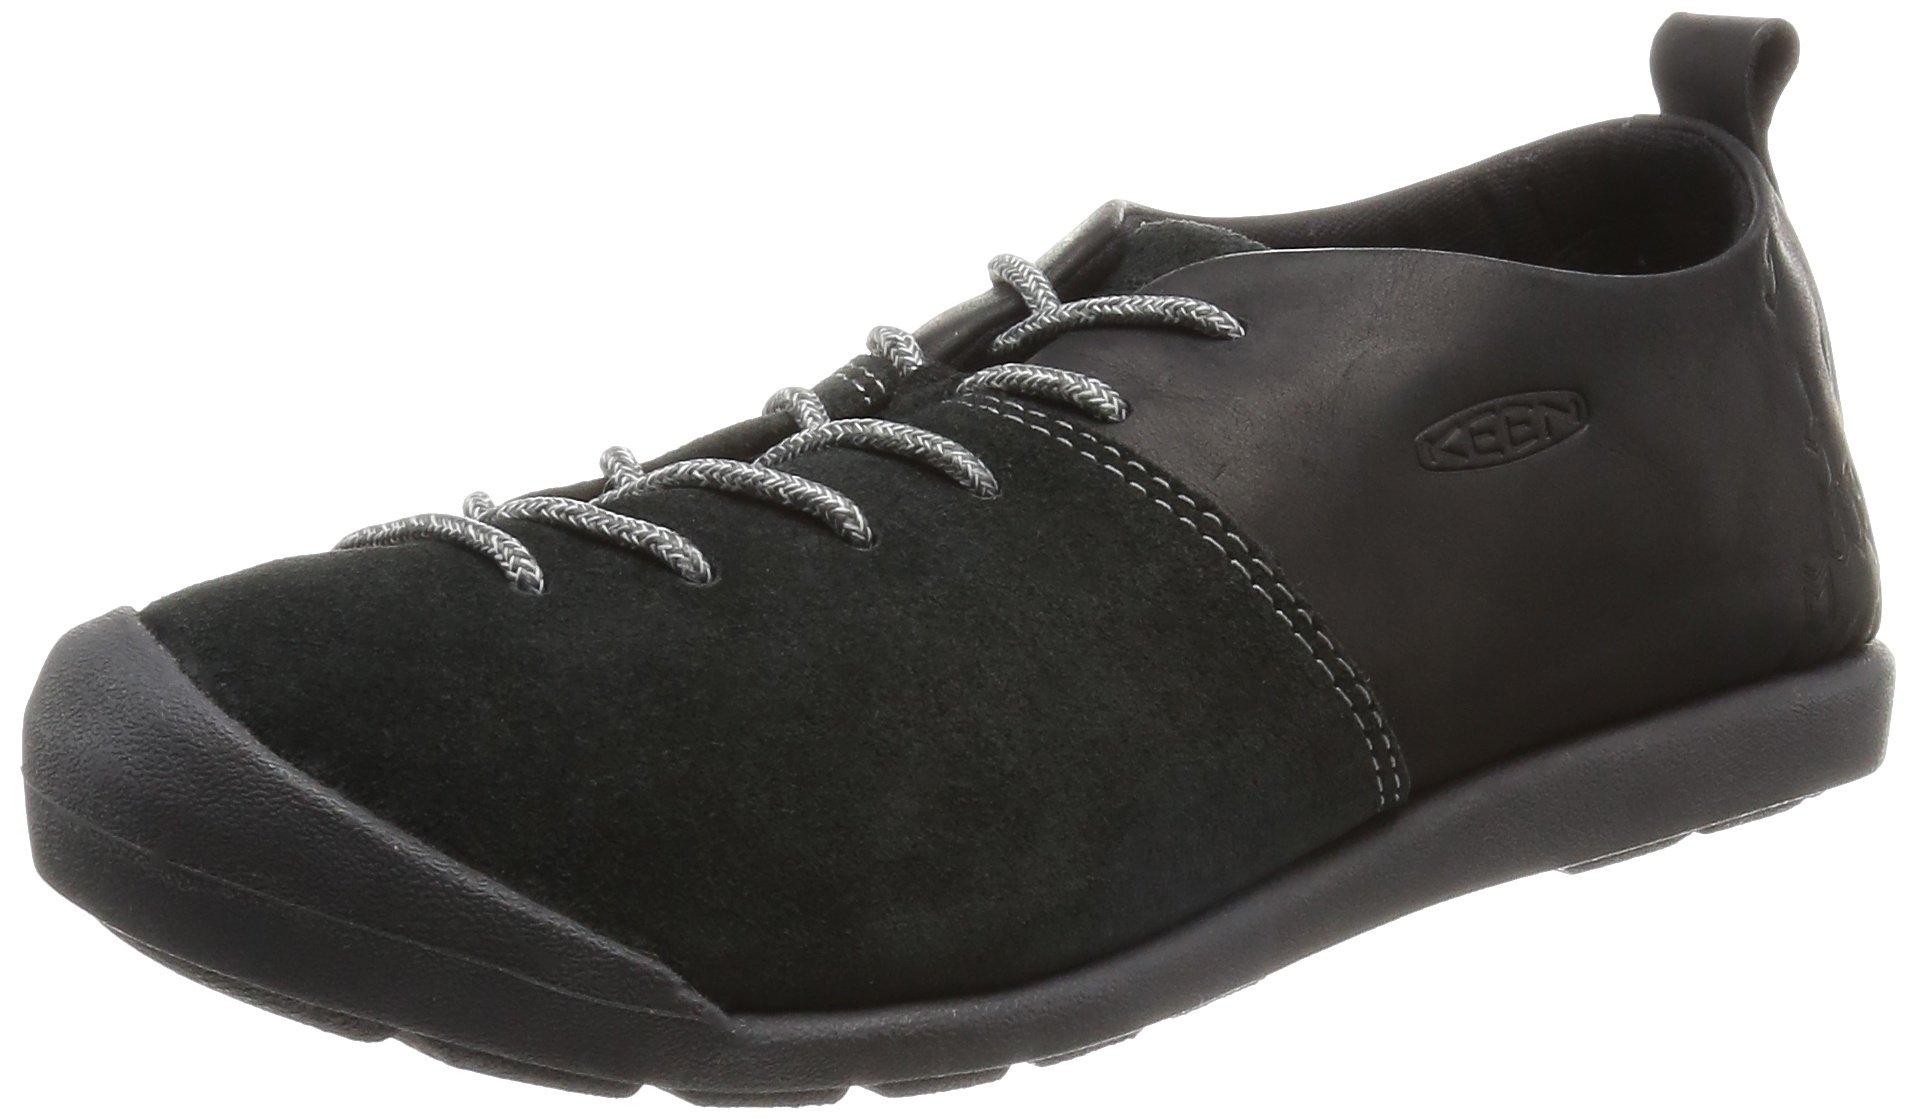 KEEN Women's Lower East Side Lace Shoe, Black, 8 M US